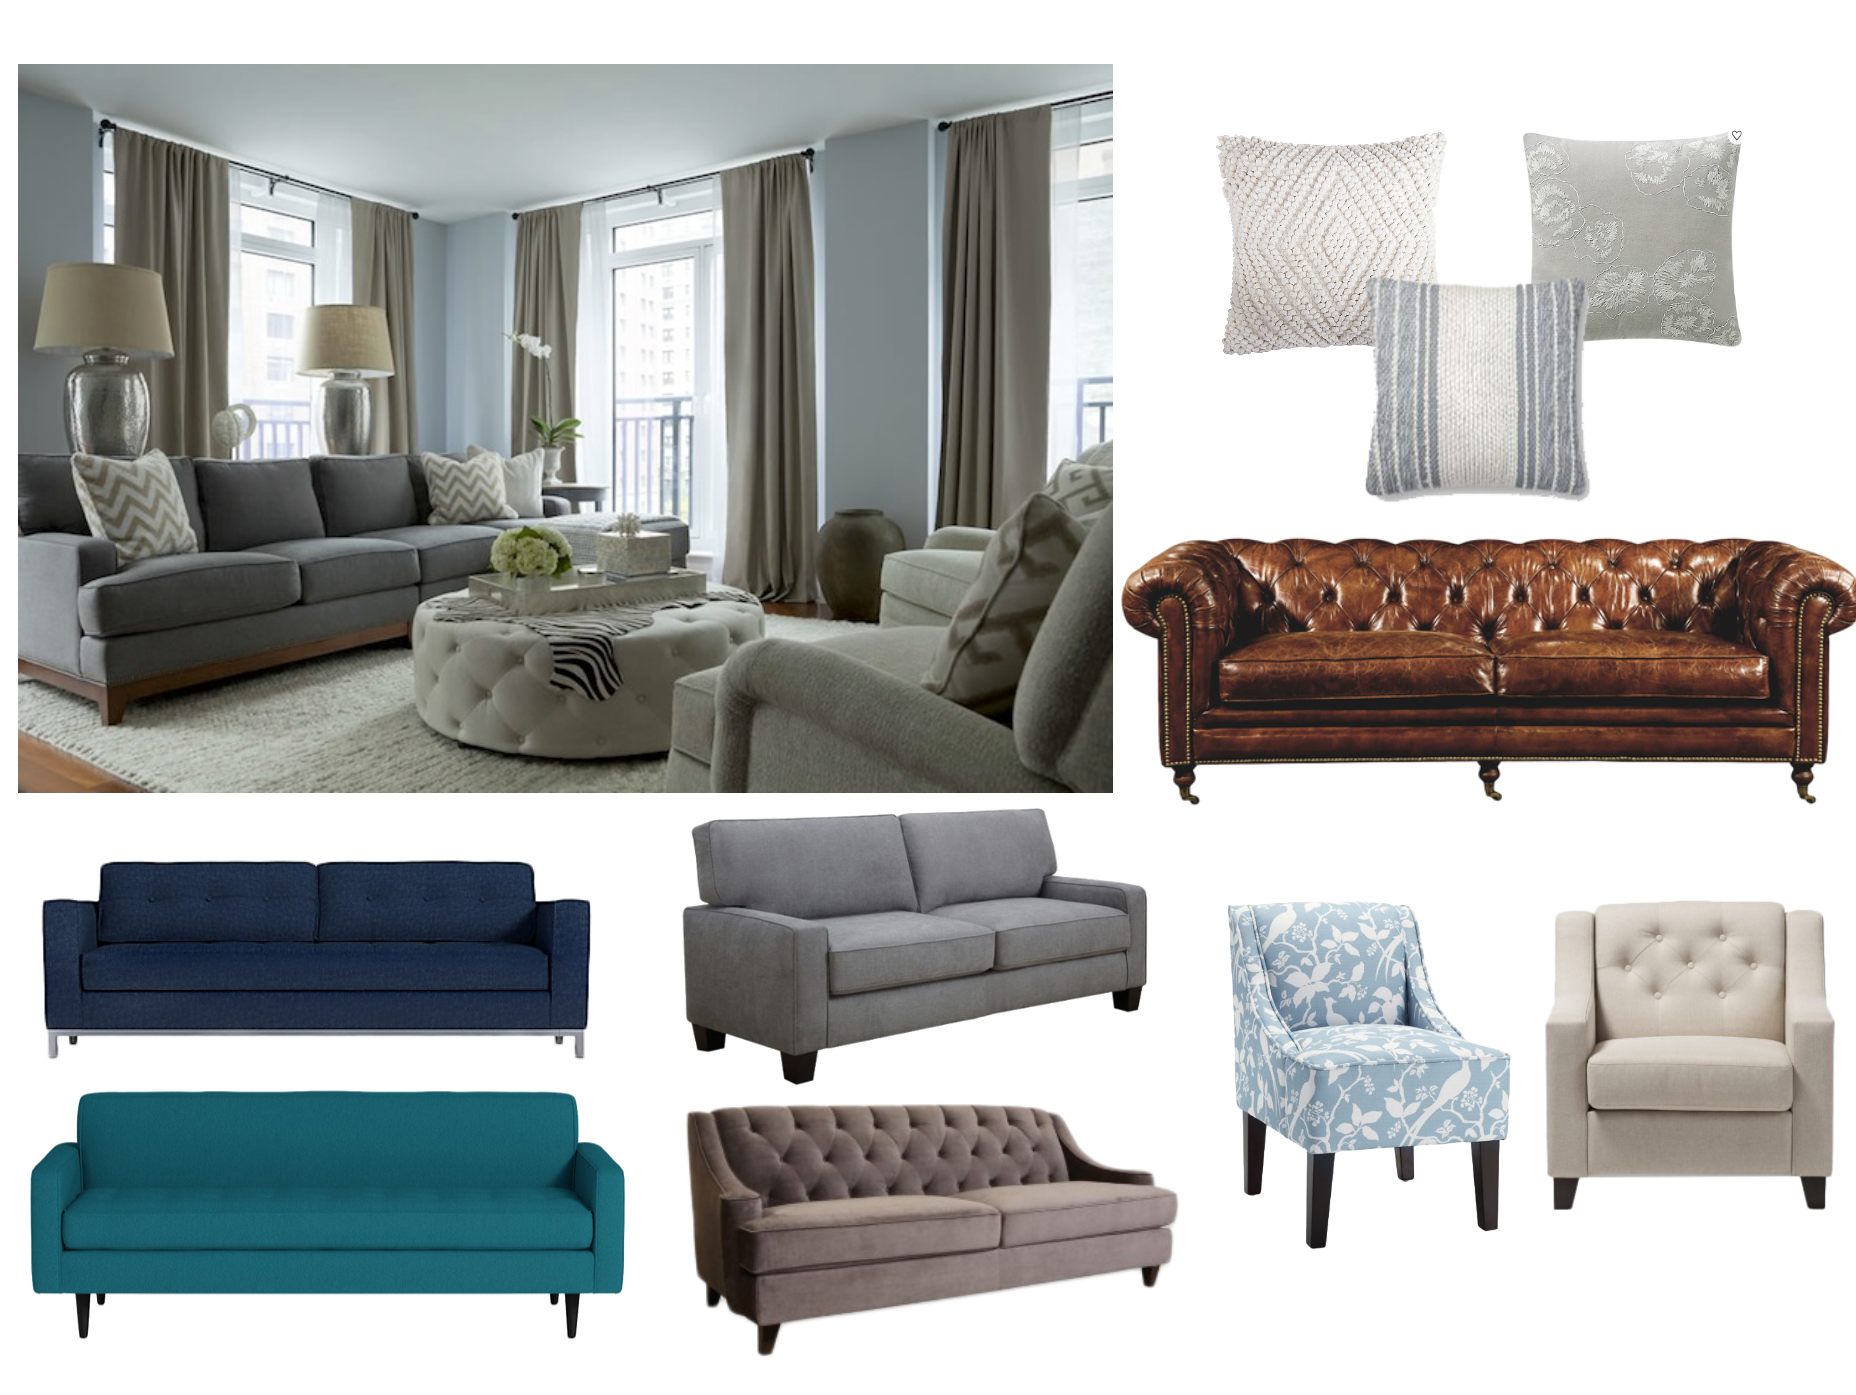 Picture of: Sofa Colors For Light Blue Gray Walls Decorist